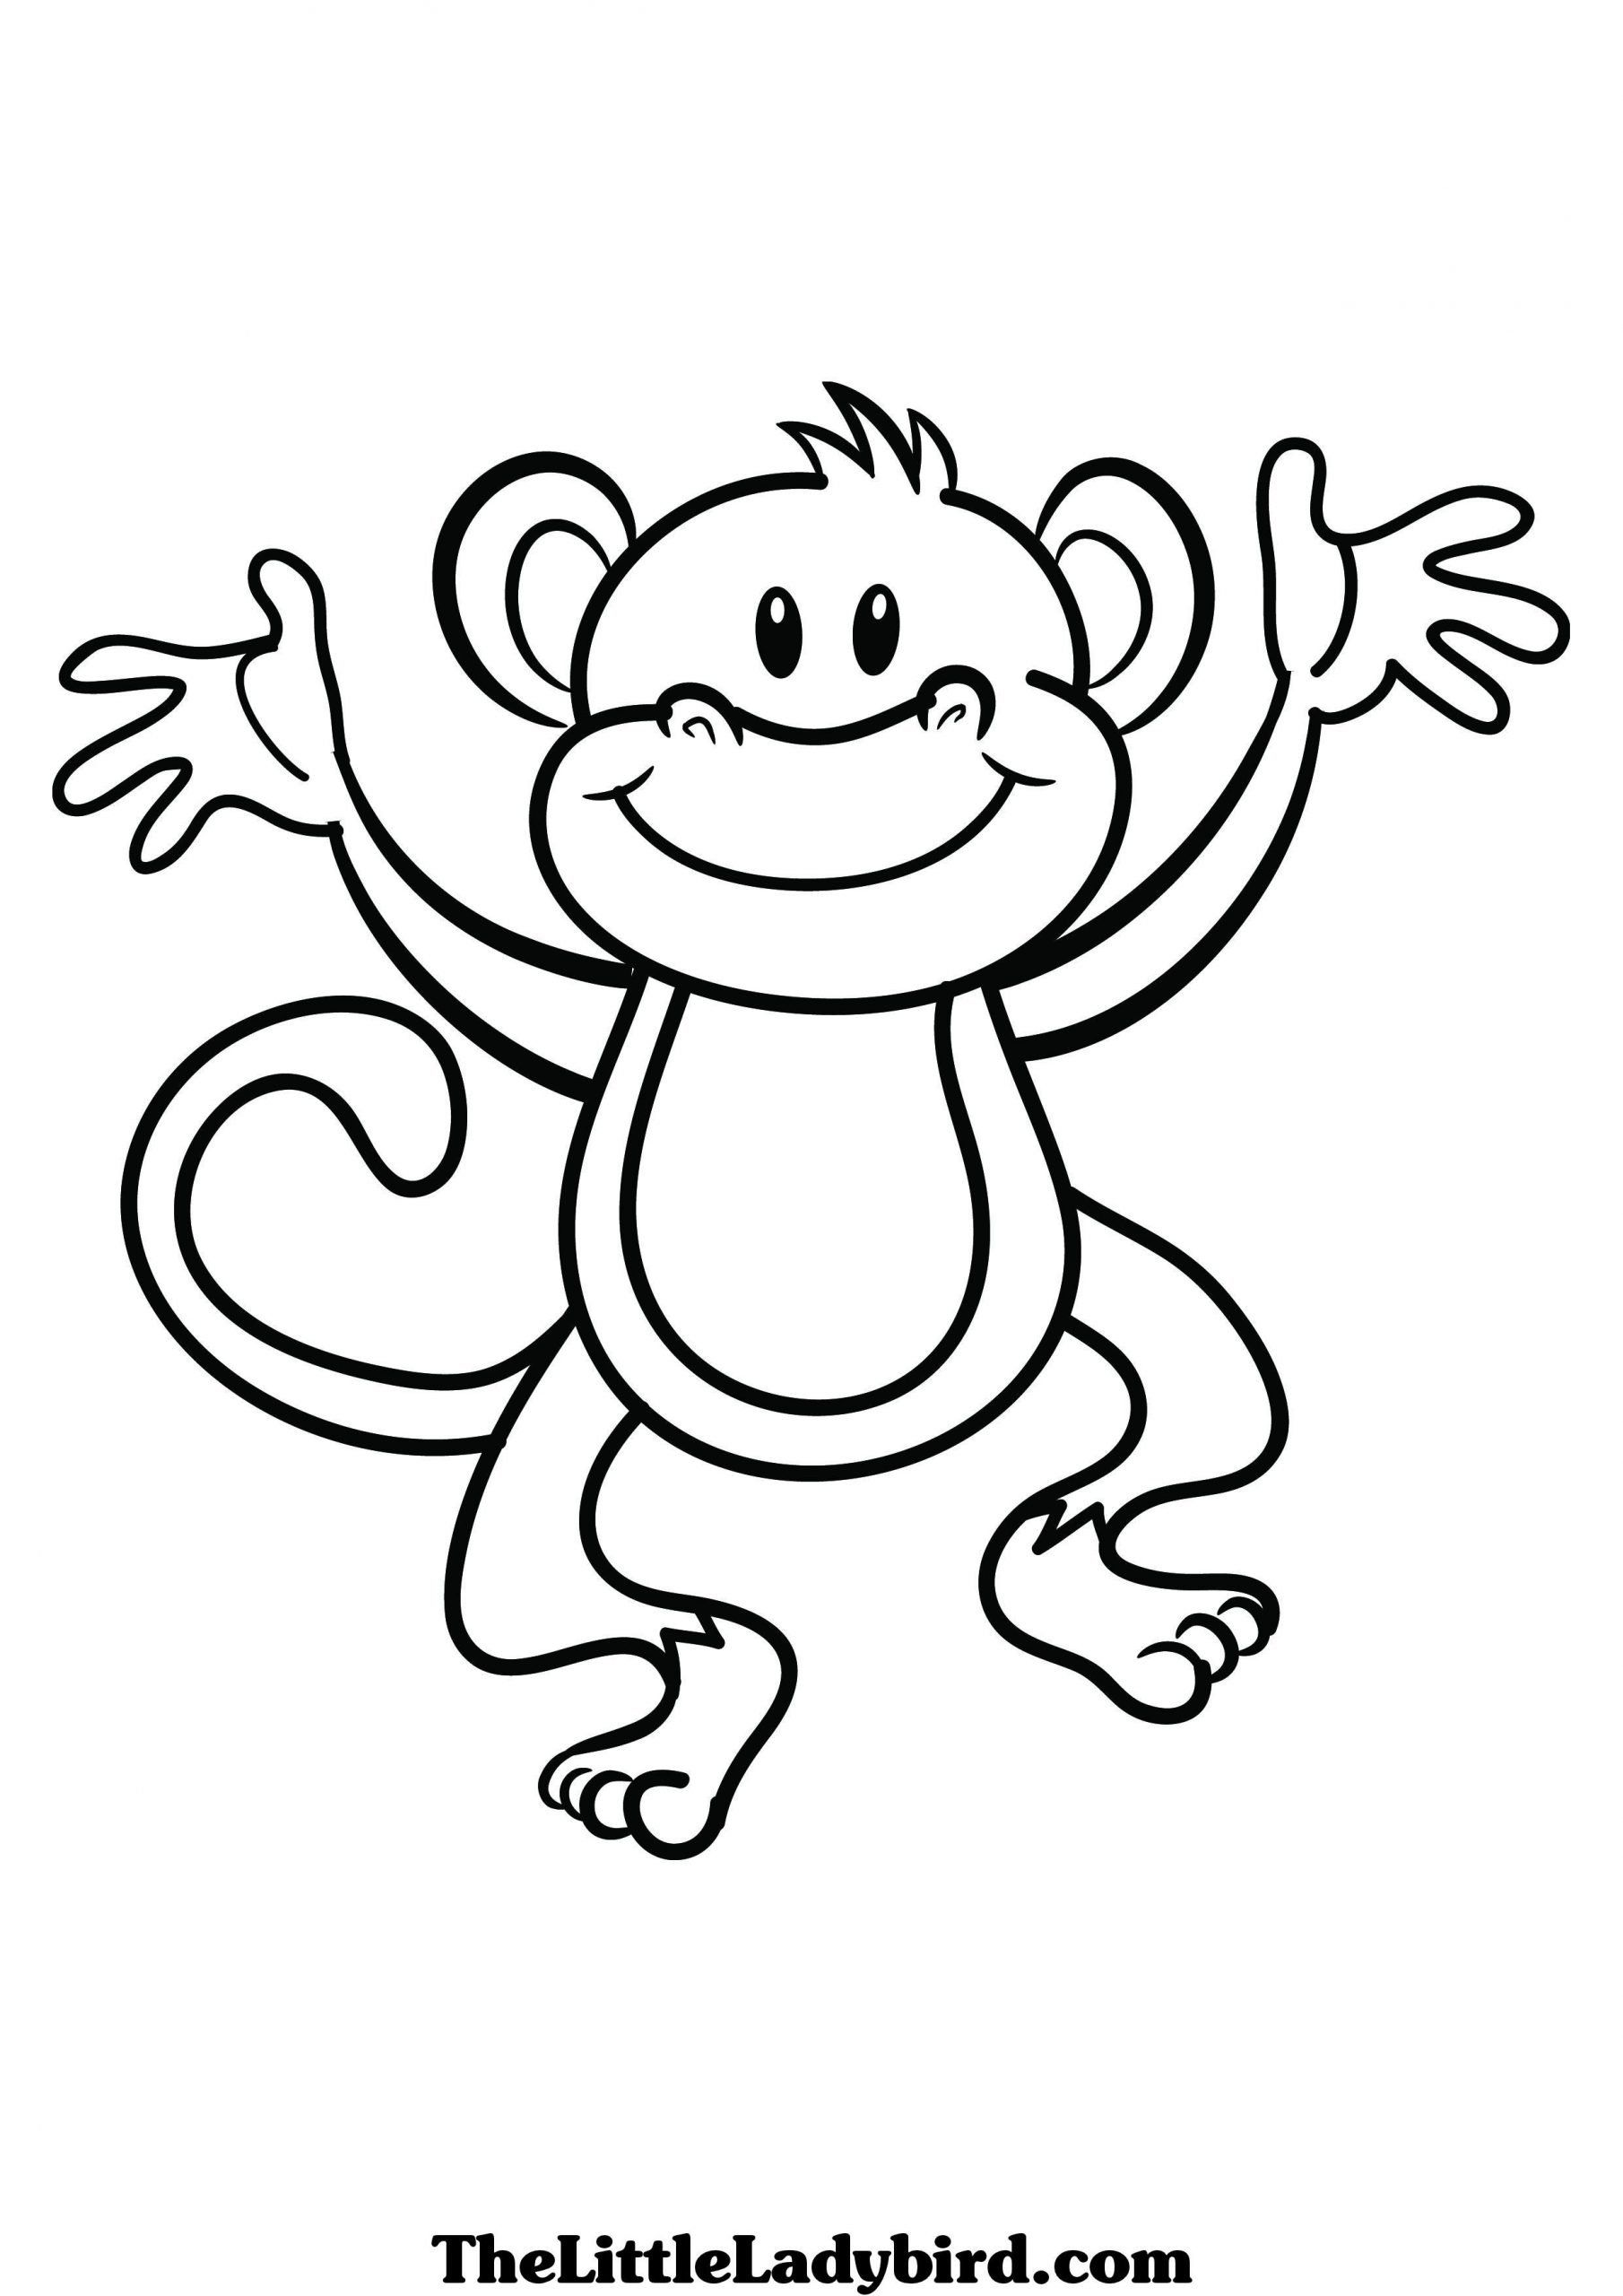 Sock Monkey Coloring Pages Free Monkey Coloring Book Page Download Free Clip Art Free In 2020 Monkey Coloring Pages Animal Coloring Pages Animal Templates